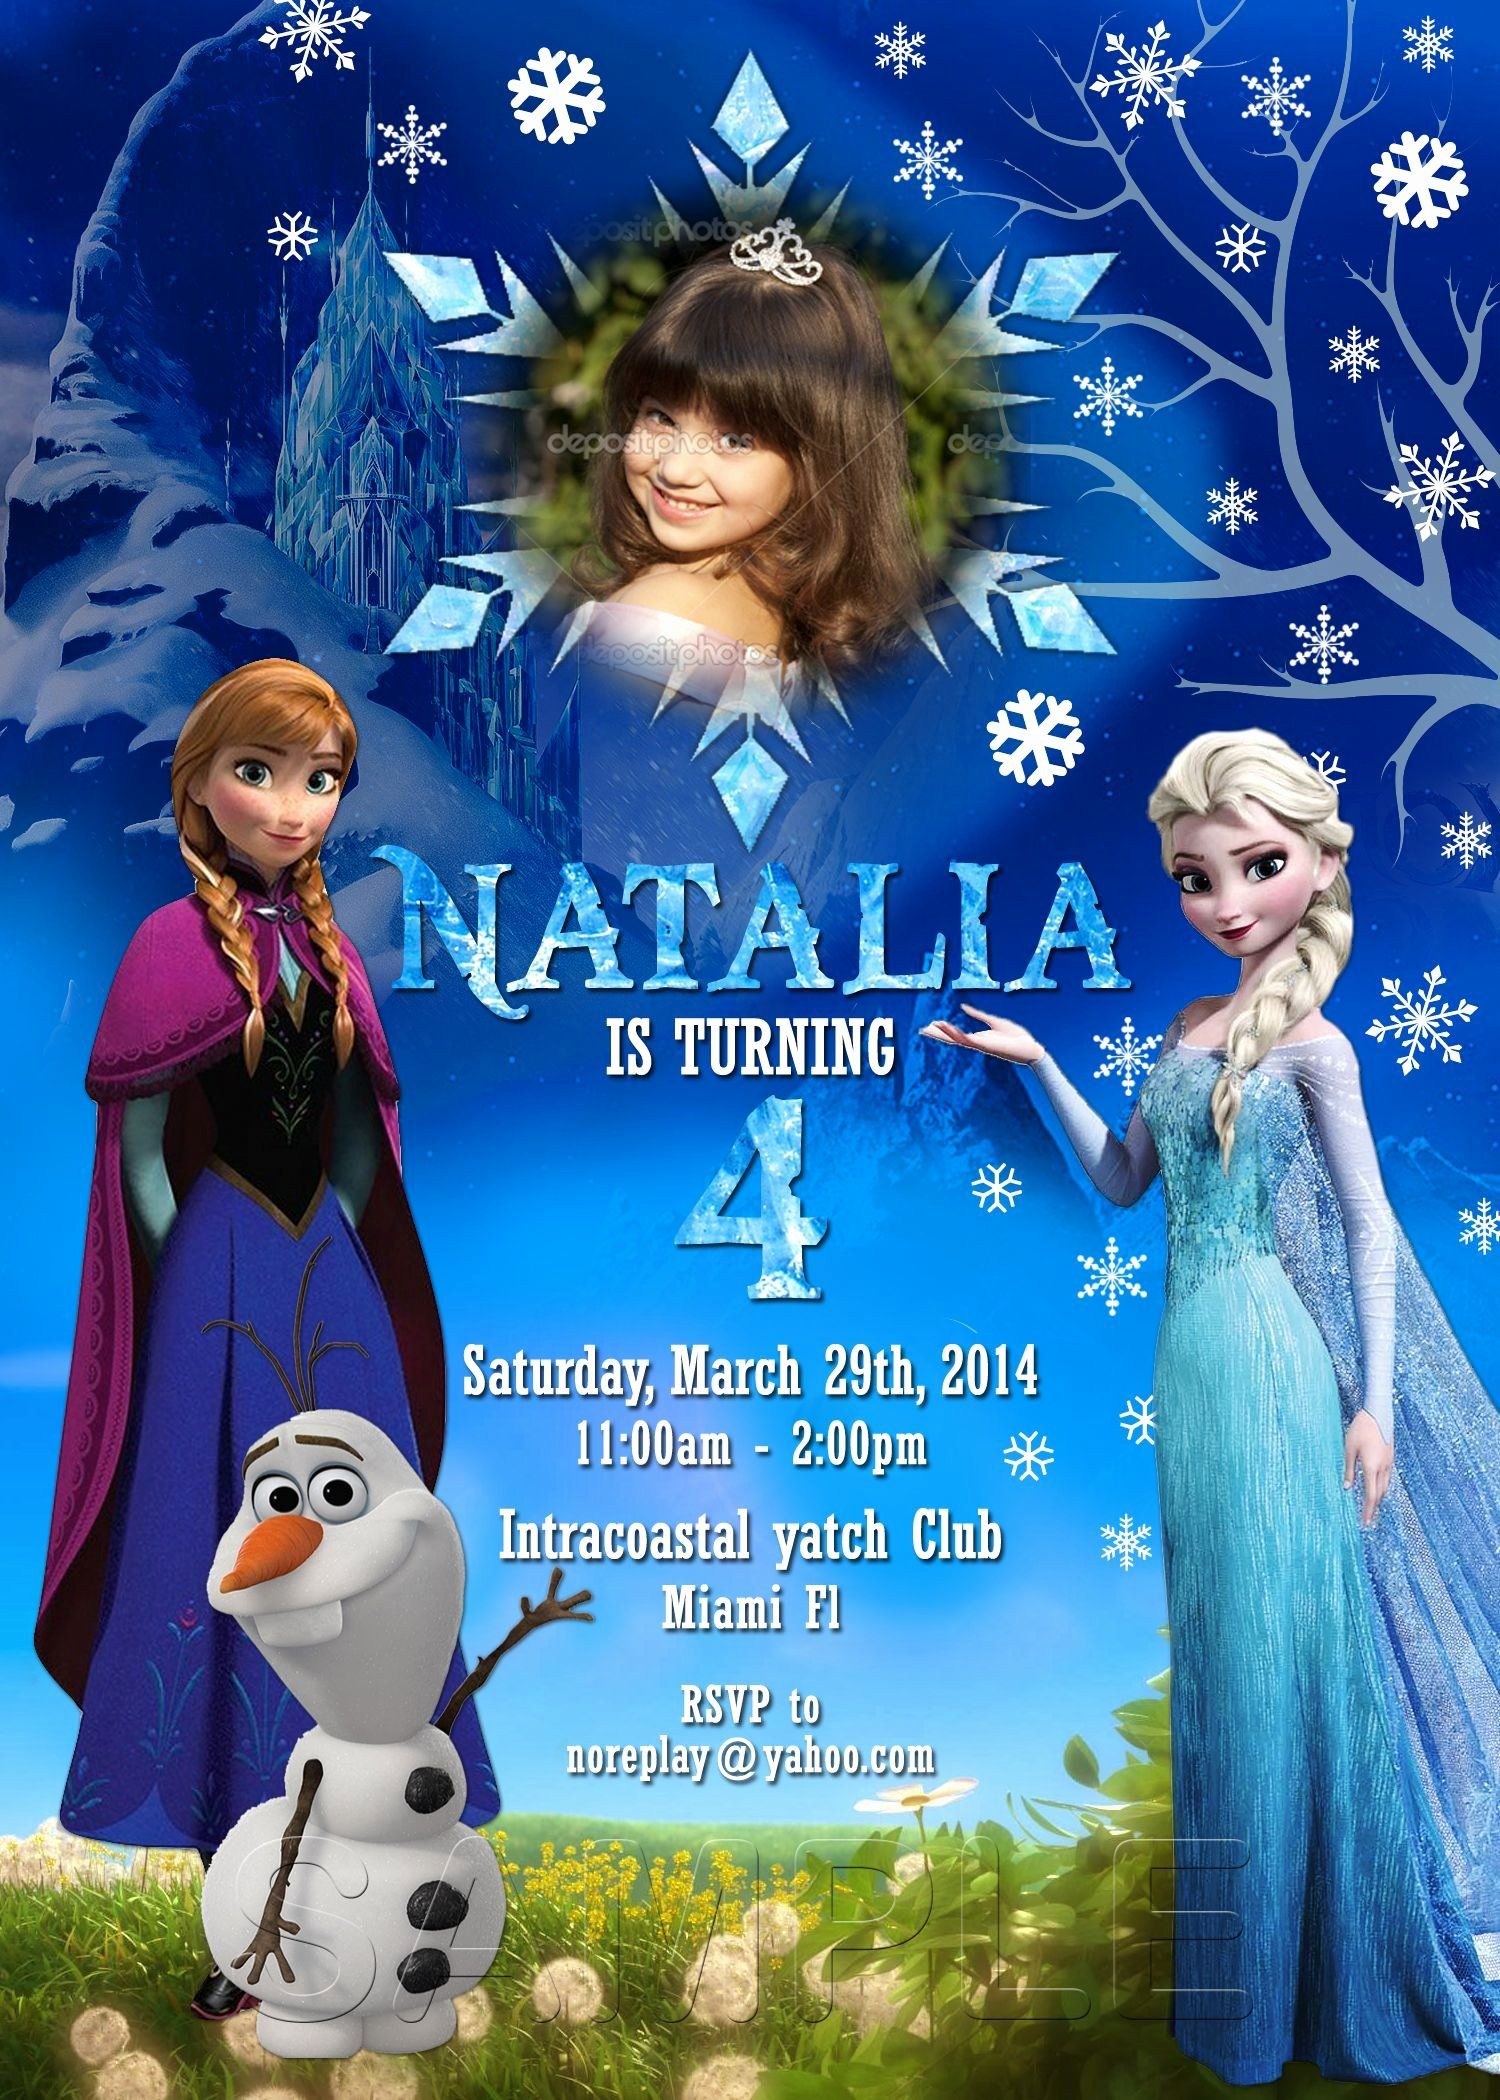 Frozen Birthday Invites Template Beautiful Disney Frozen Birthday Frozen Invitation Fr Disney Frozen Invitations Frozen Invitations Frozen Birthday Invitations